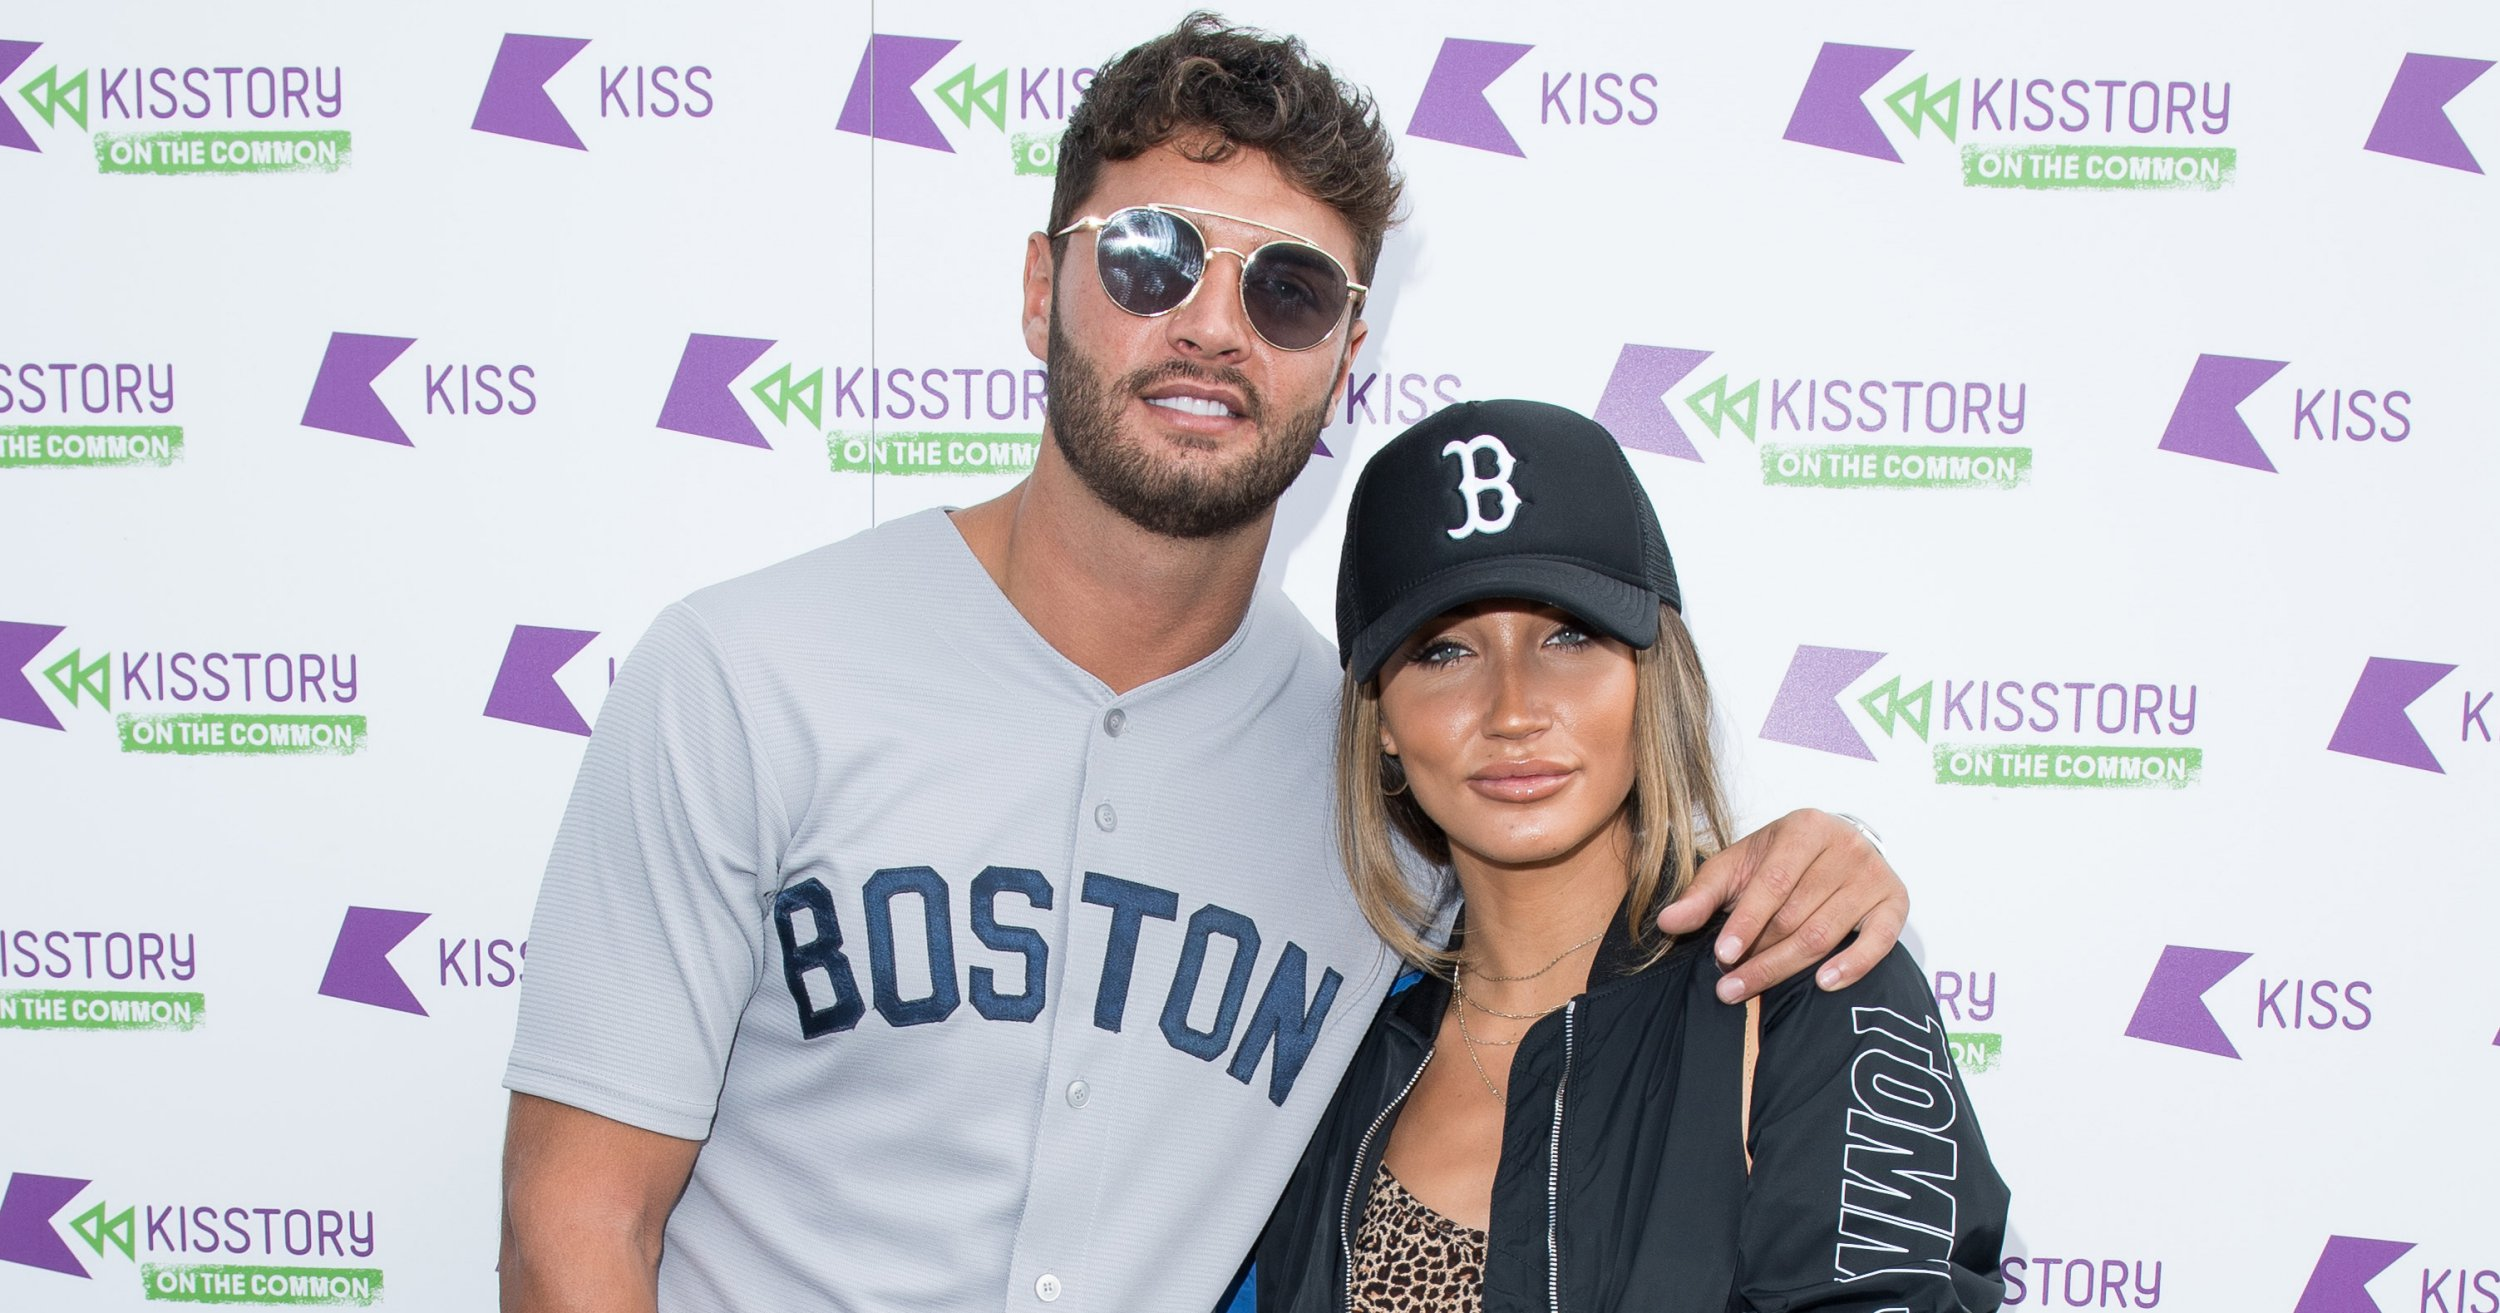 Megan McKenna opens up about why she split from 'Muggy' Mike Thalassitis